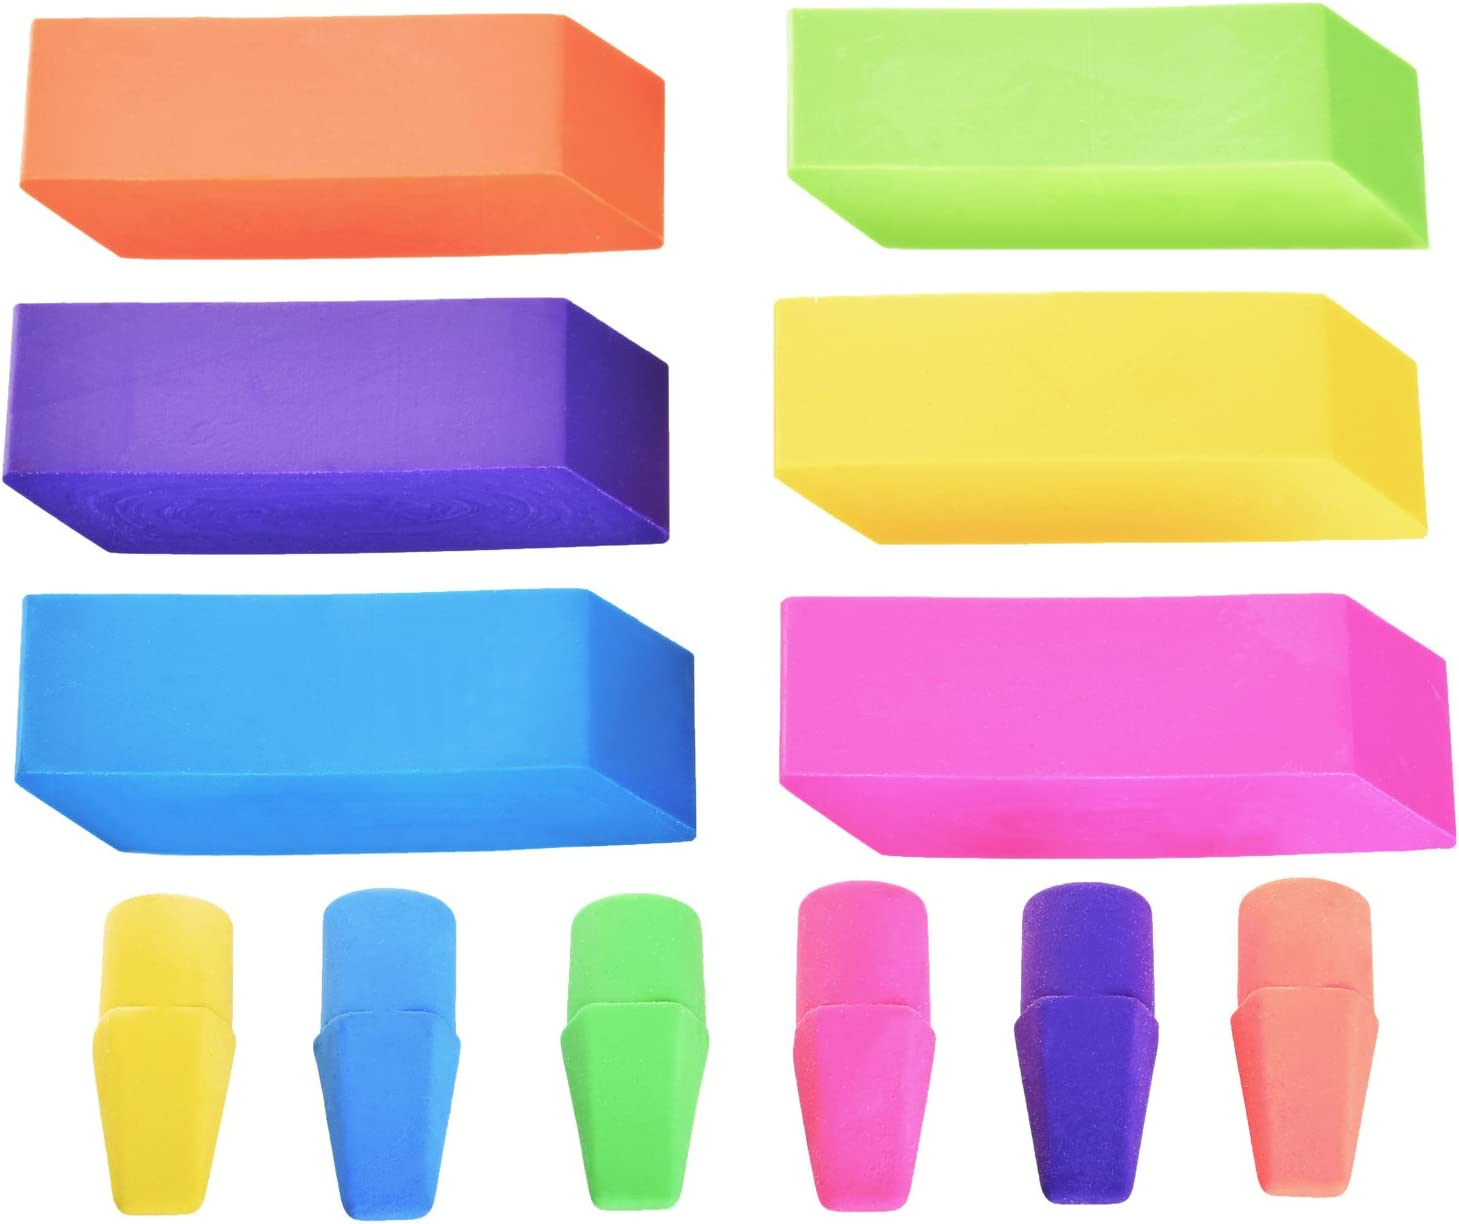 Use in School Home /& Office Emraw 6 Assorted Color Cap Fun Mini Eraser Top for Pencils 50 Pack